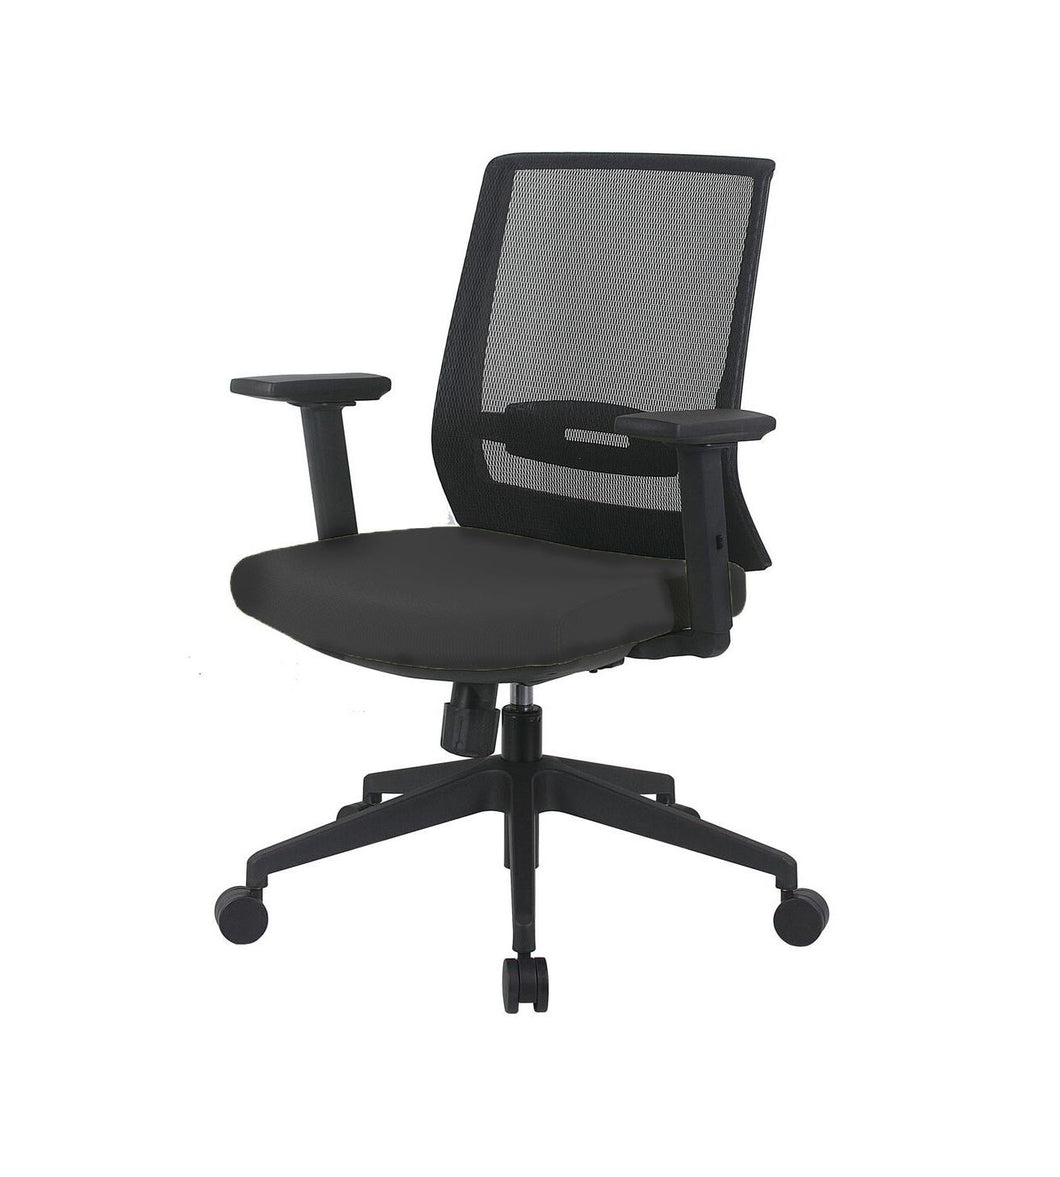 Shop Online Fiona Contemporary Mesh Back Office Chair - Fast Ship Furniture